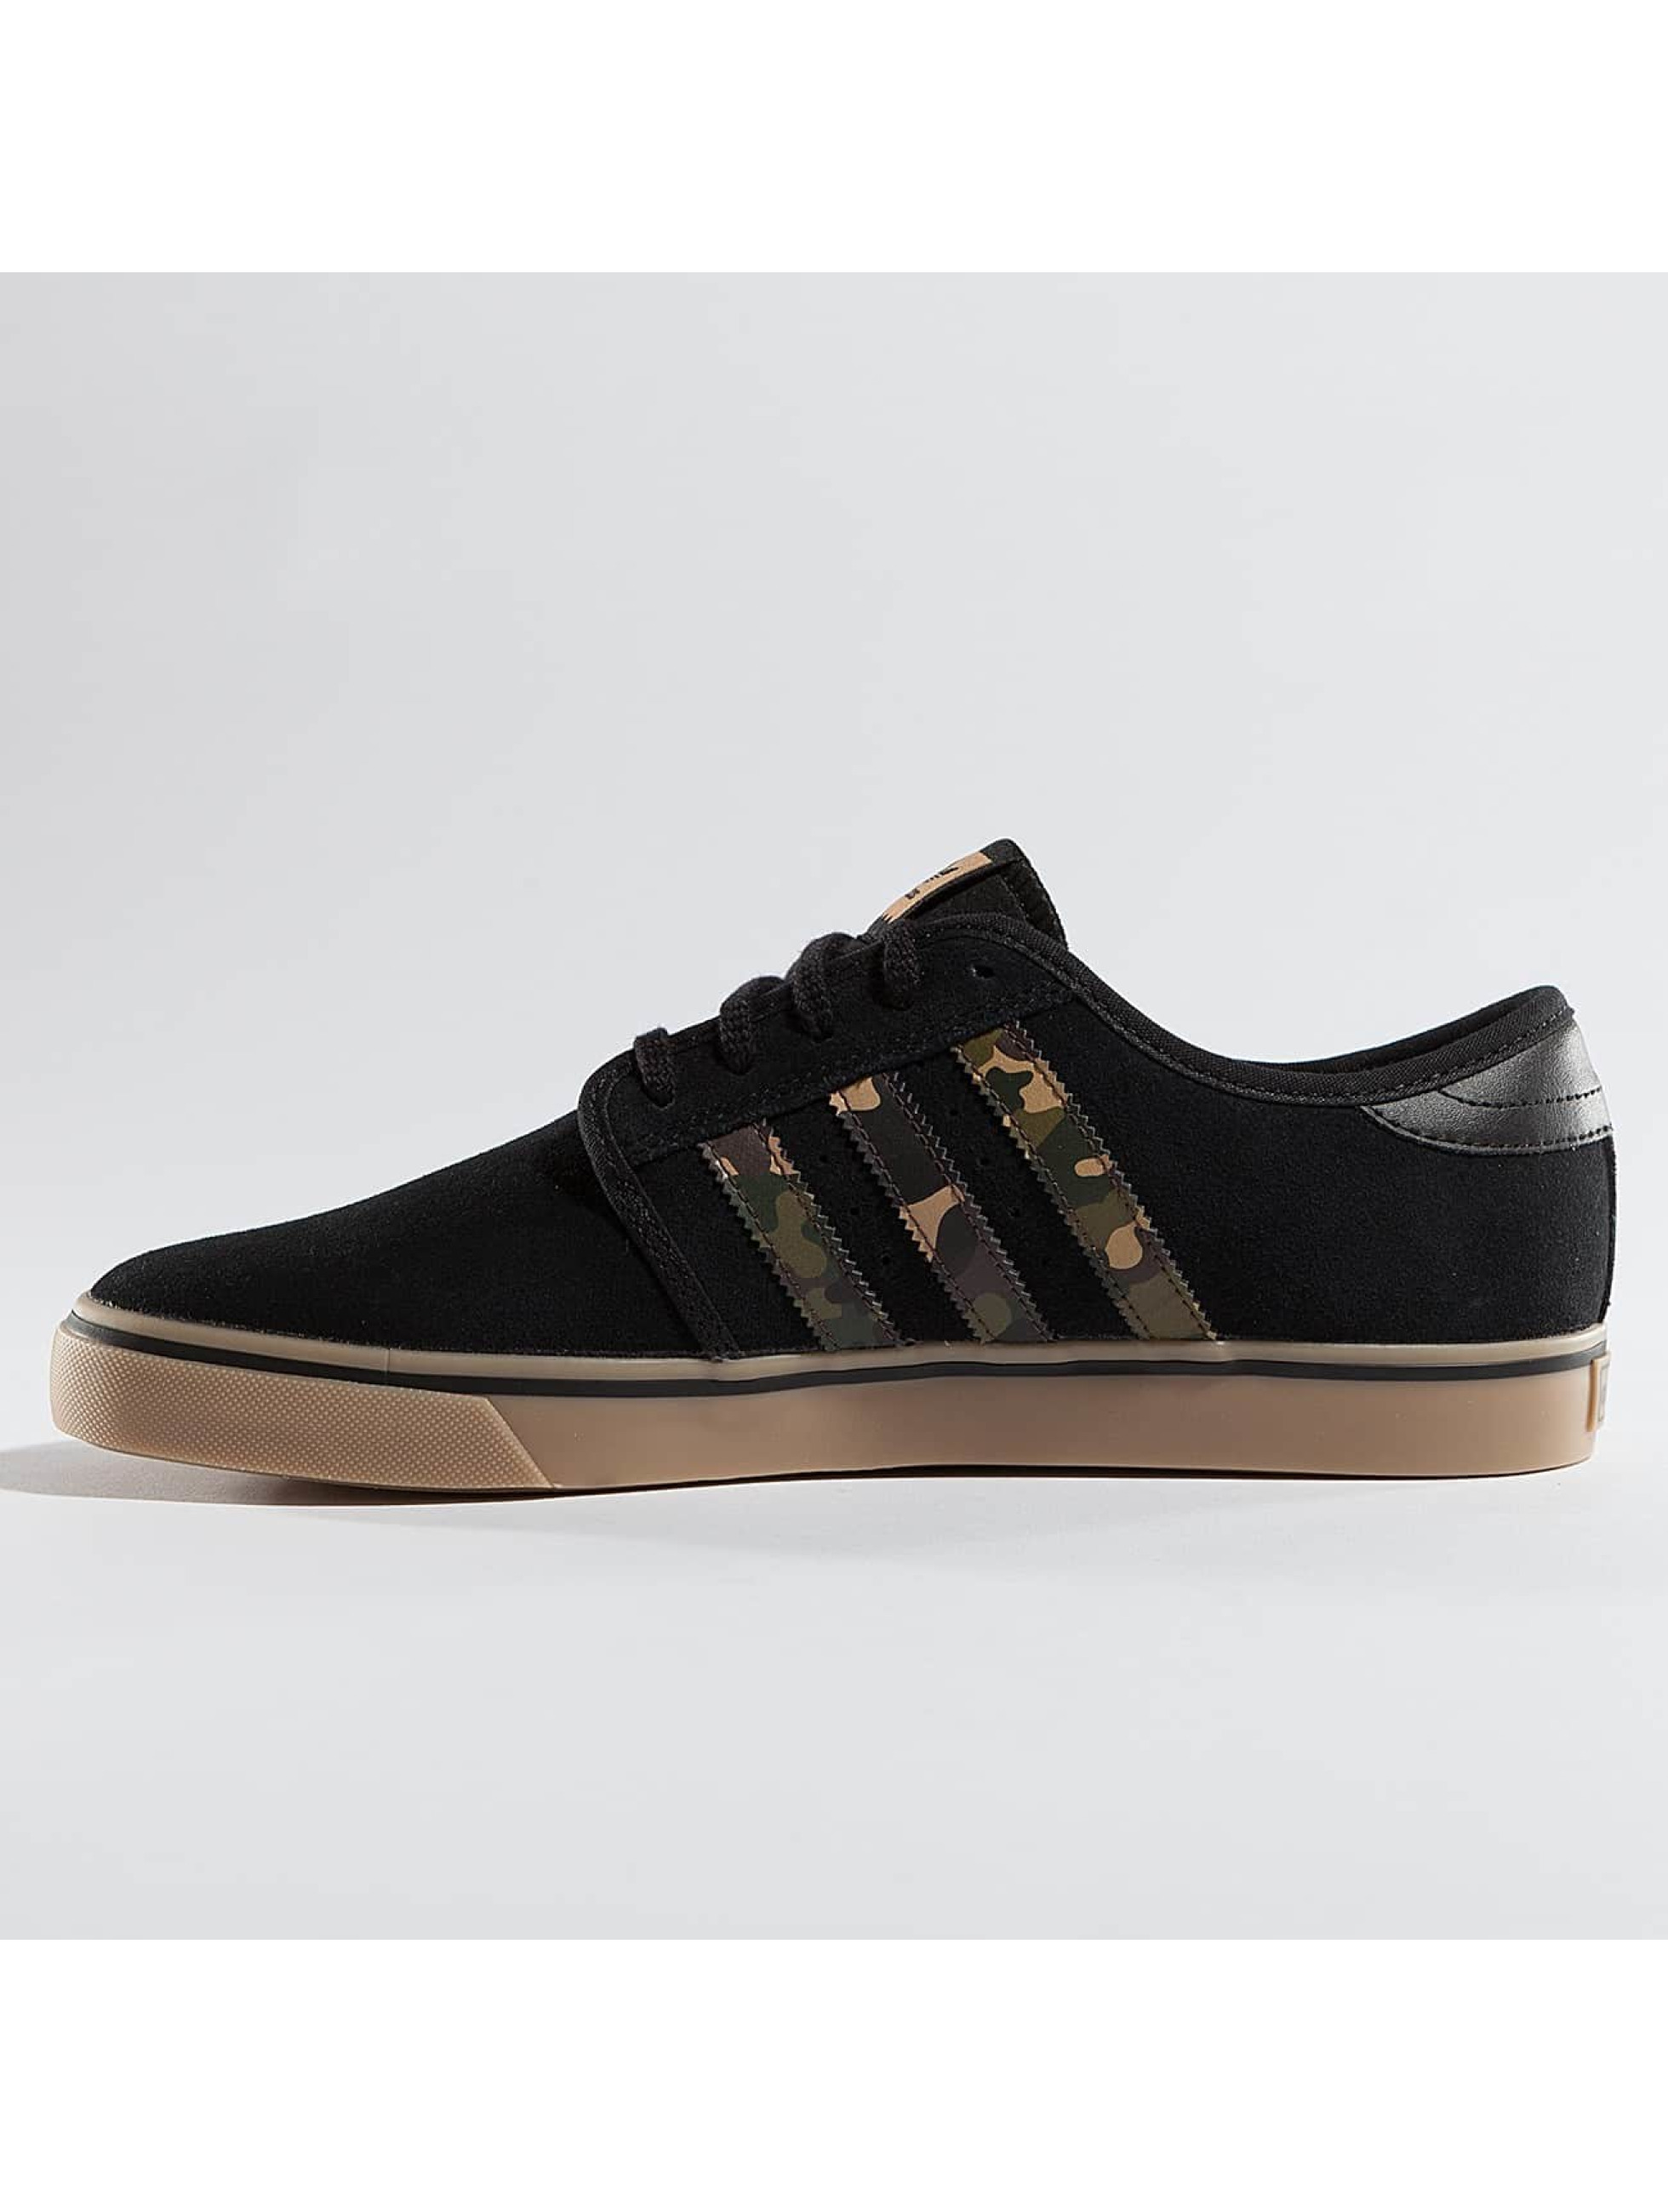 adidas Sneakers Seeley black